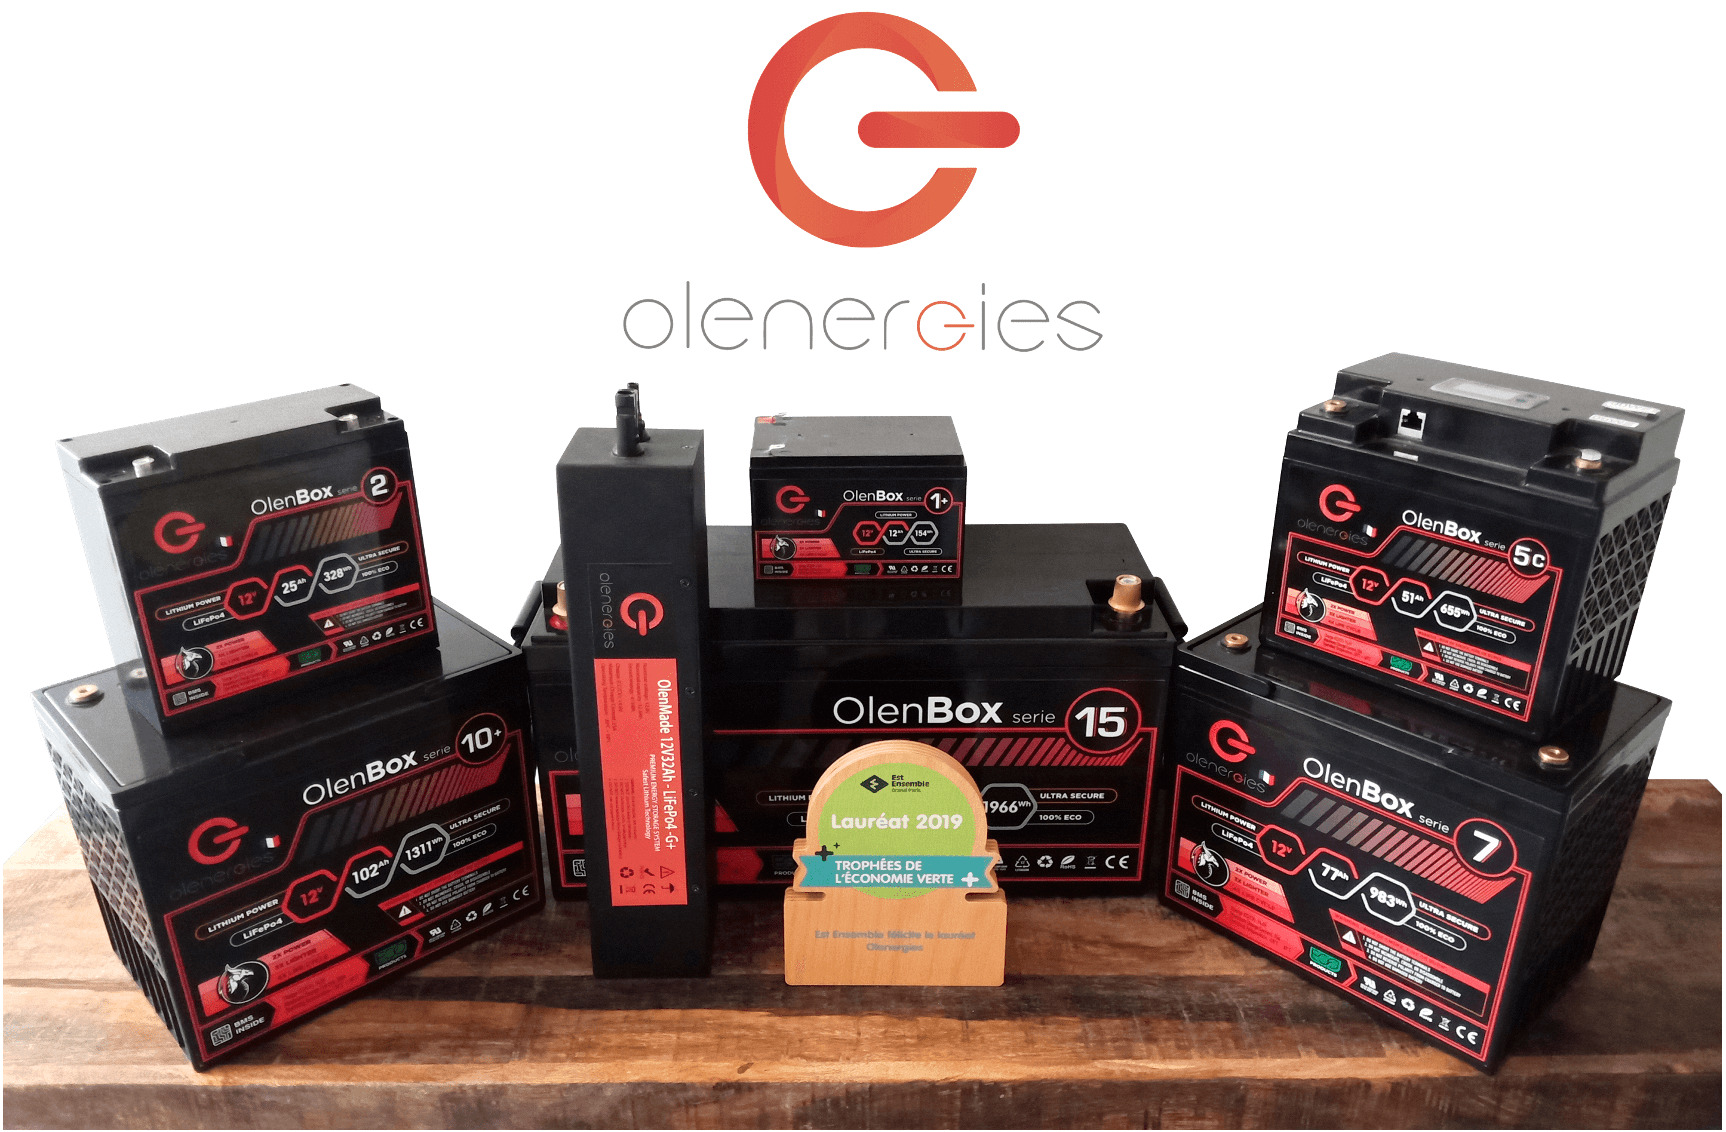 Gamme De Batteries Lithium Lfp Olenbox Olenergies, Olenergies - Batteries de stockage lithium LFP - French lithium battery manufacturer